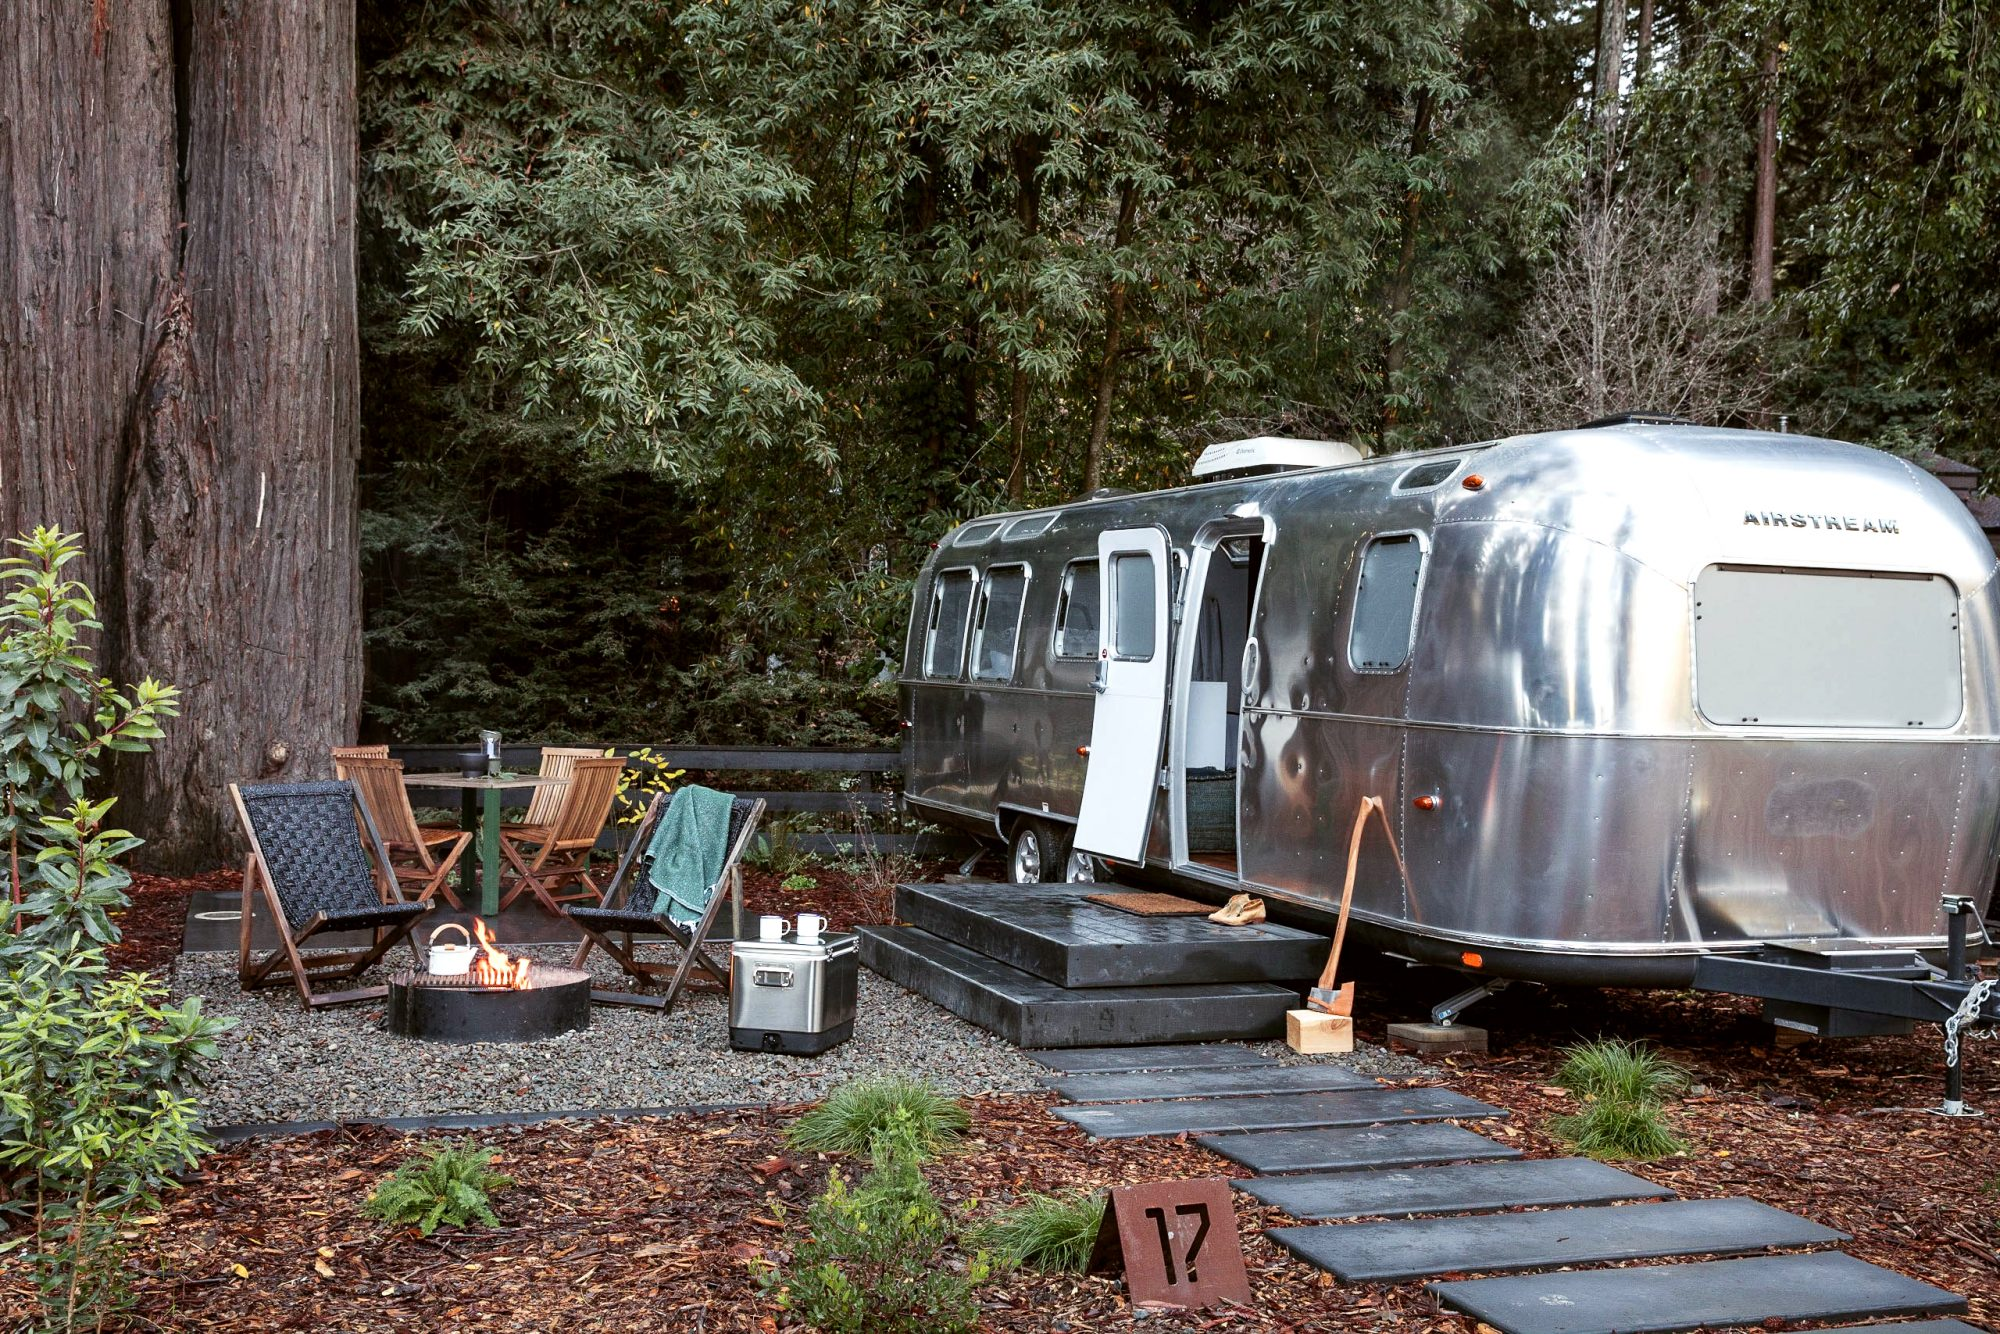 You Can Spend the Night in a Glamorous Airstream Trailer in the Middle of Yosemite National Park